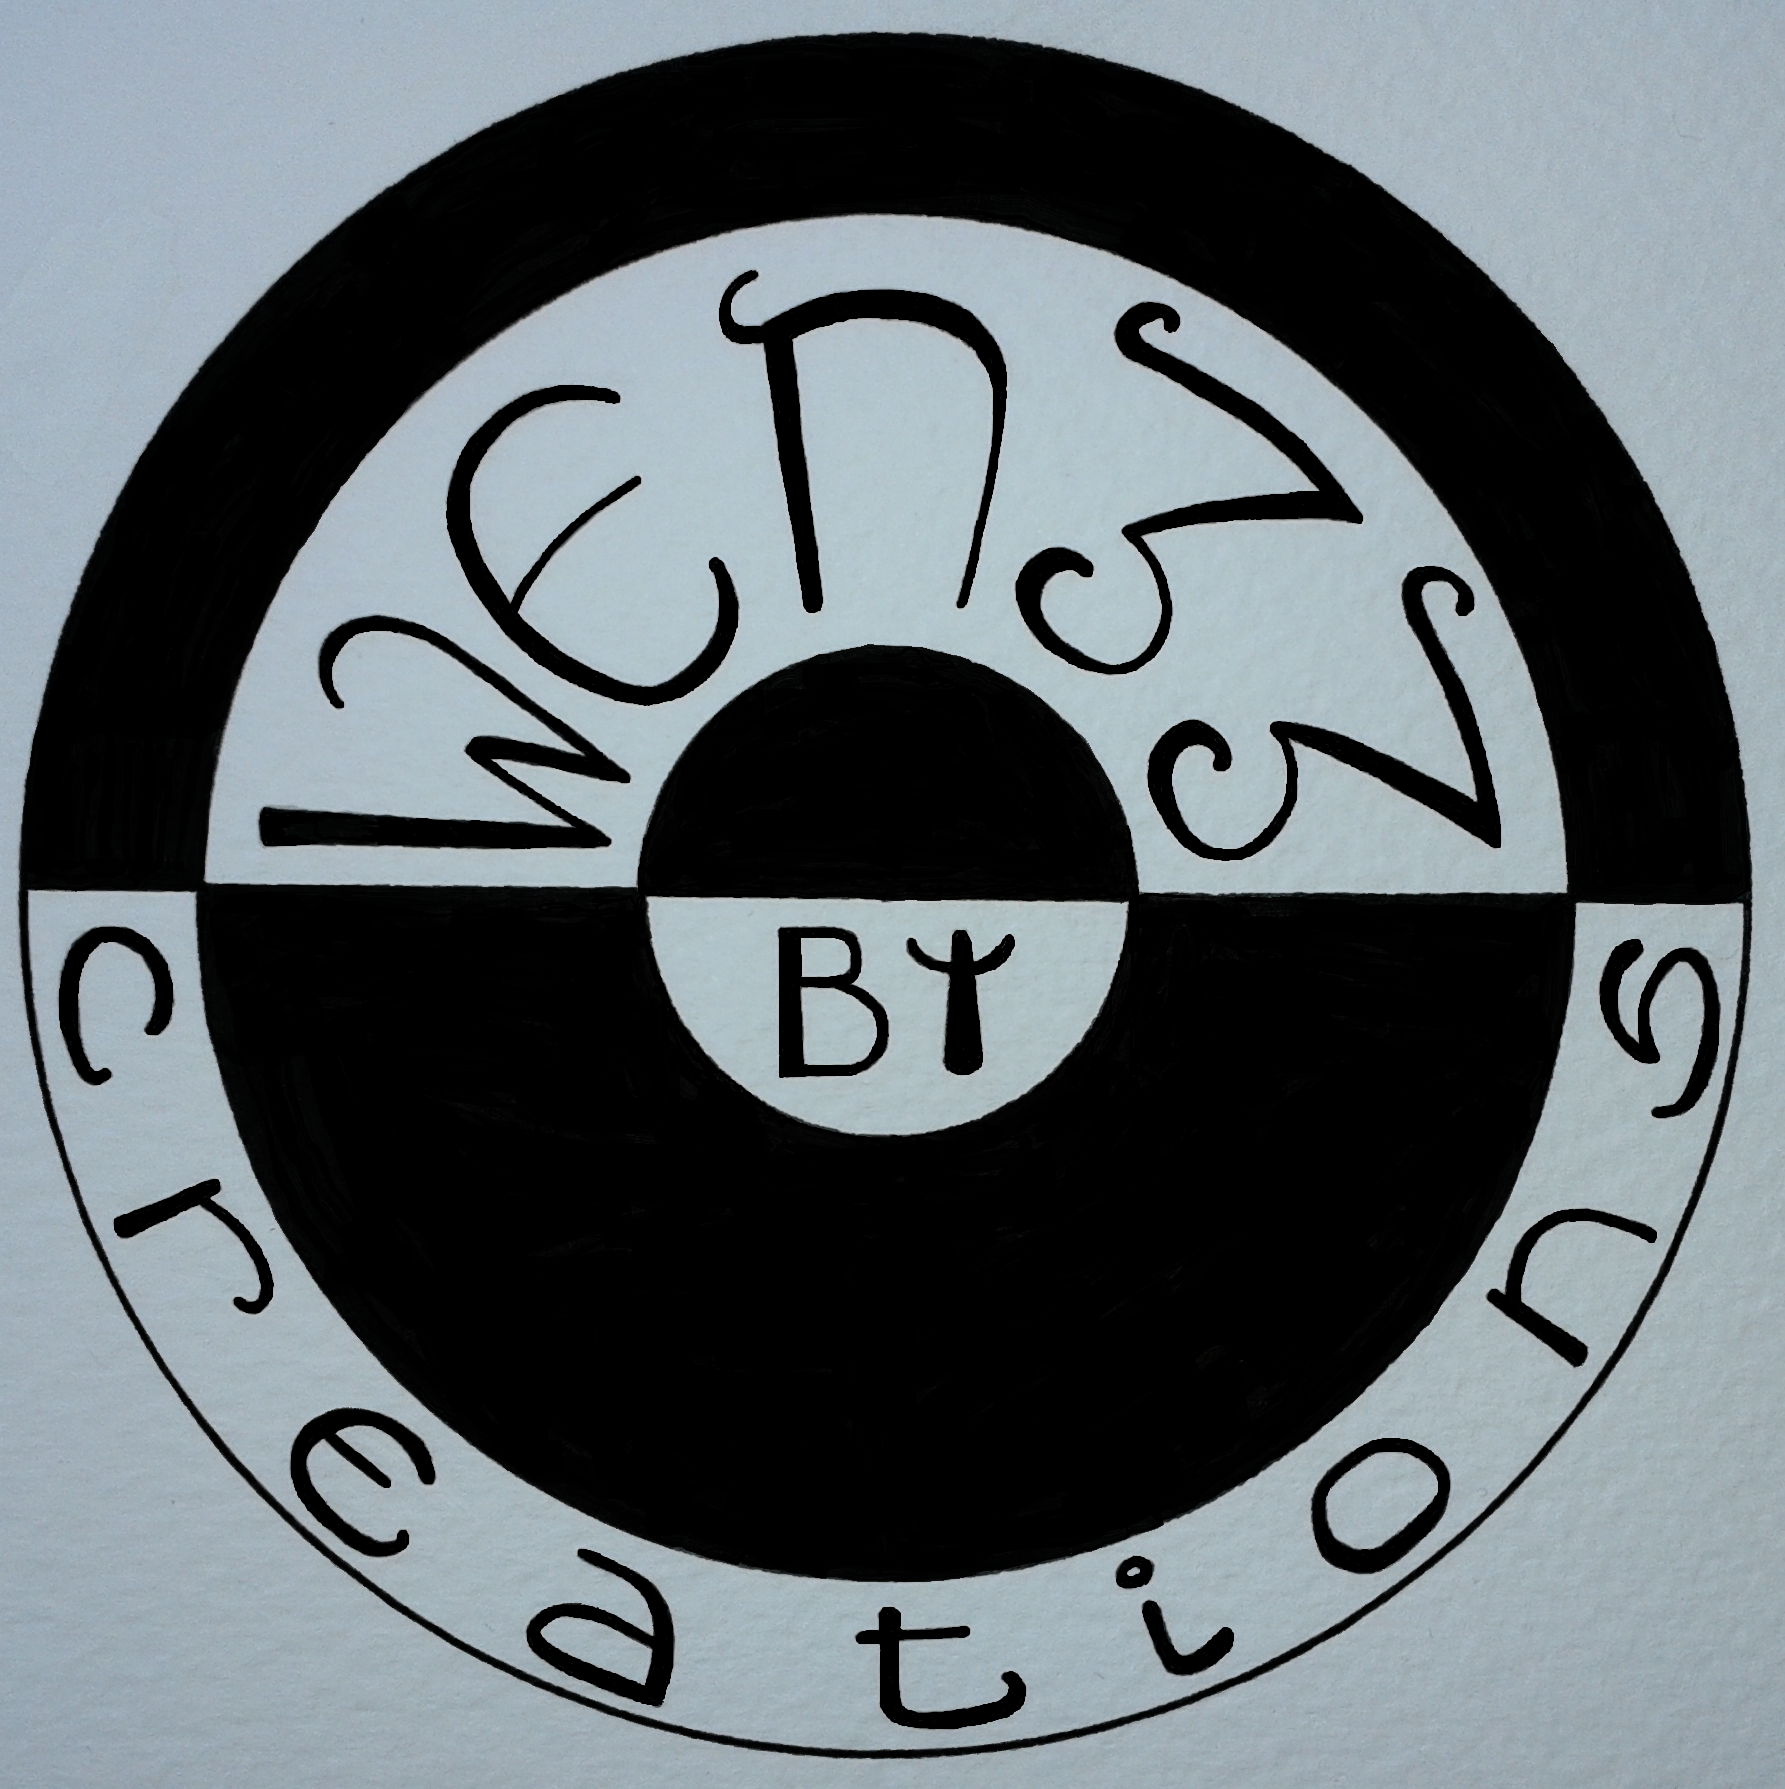 Bantu symbols and meanings by wenzz creations biocorpaavc